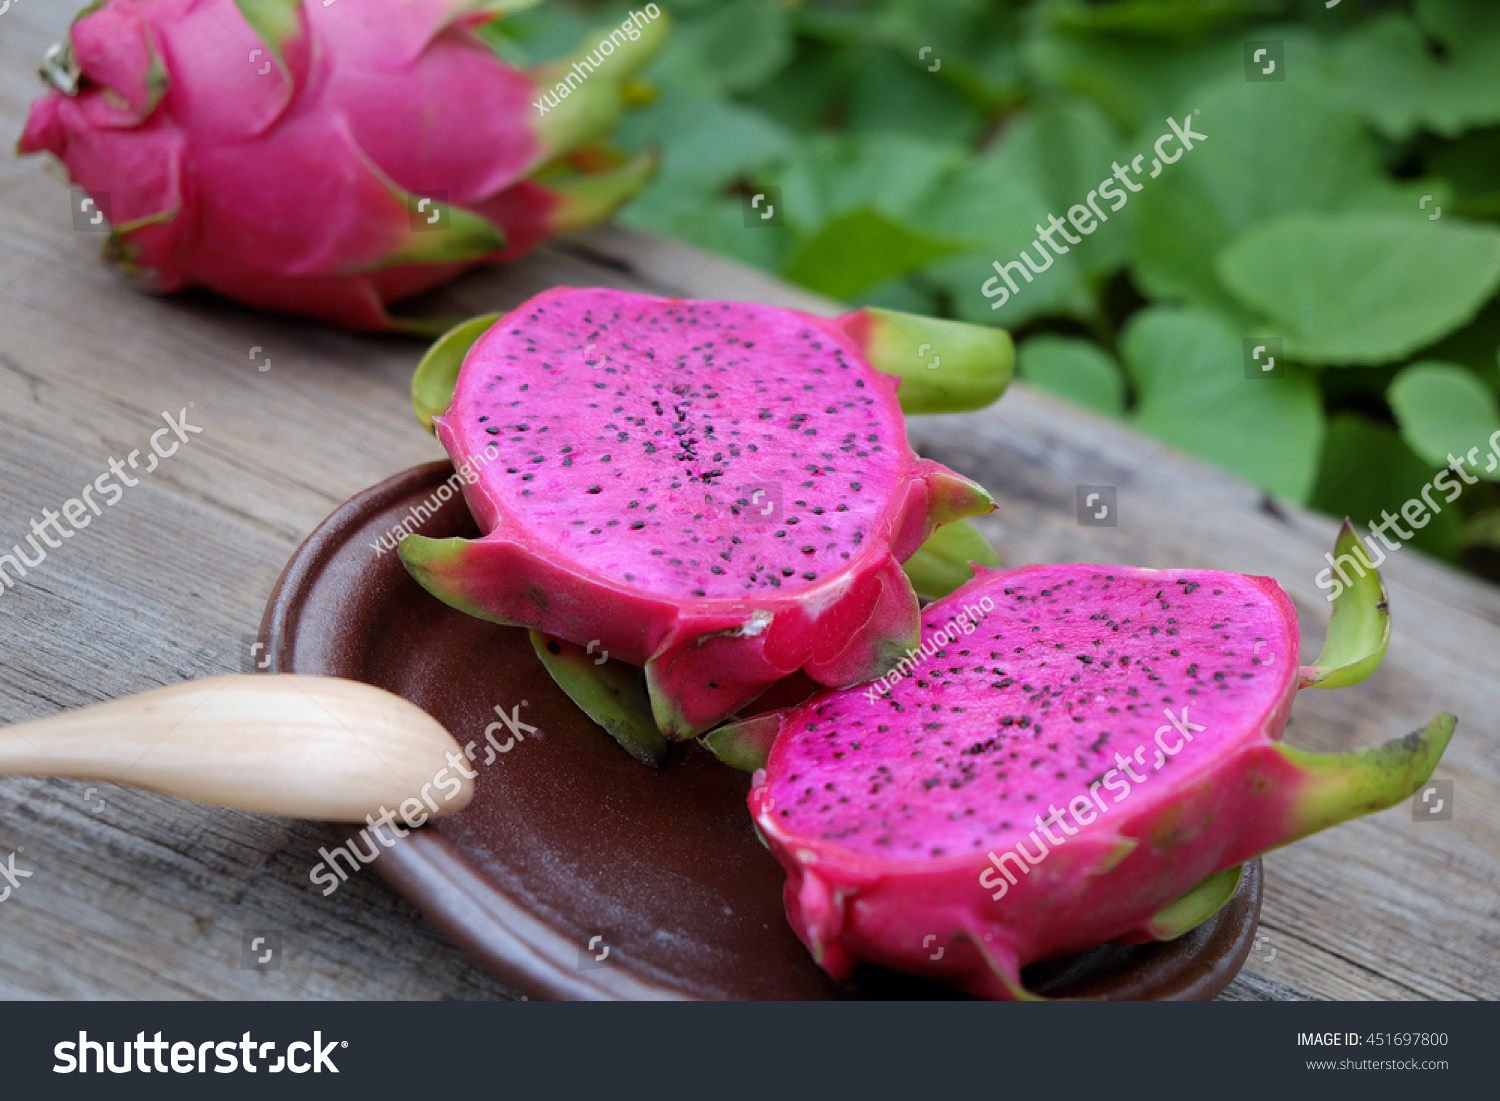 Eating Dragon Fruit, A Tropical Fruits, Vietnam Agriculture How To Eat  Vietnamese Dragon Fruit